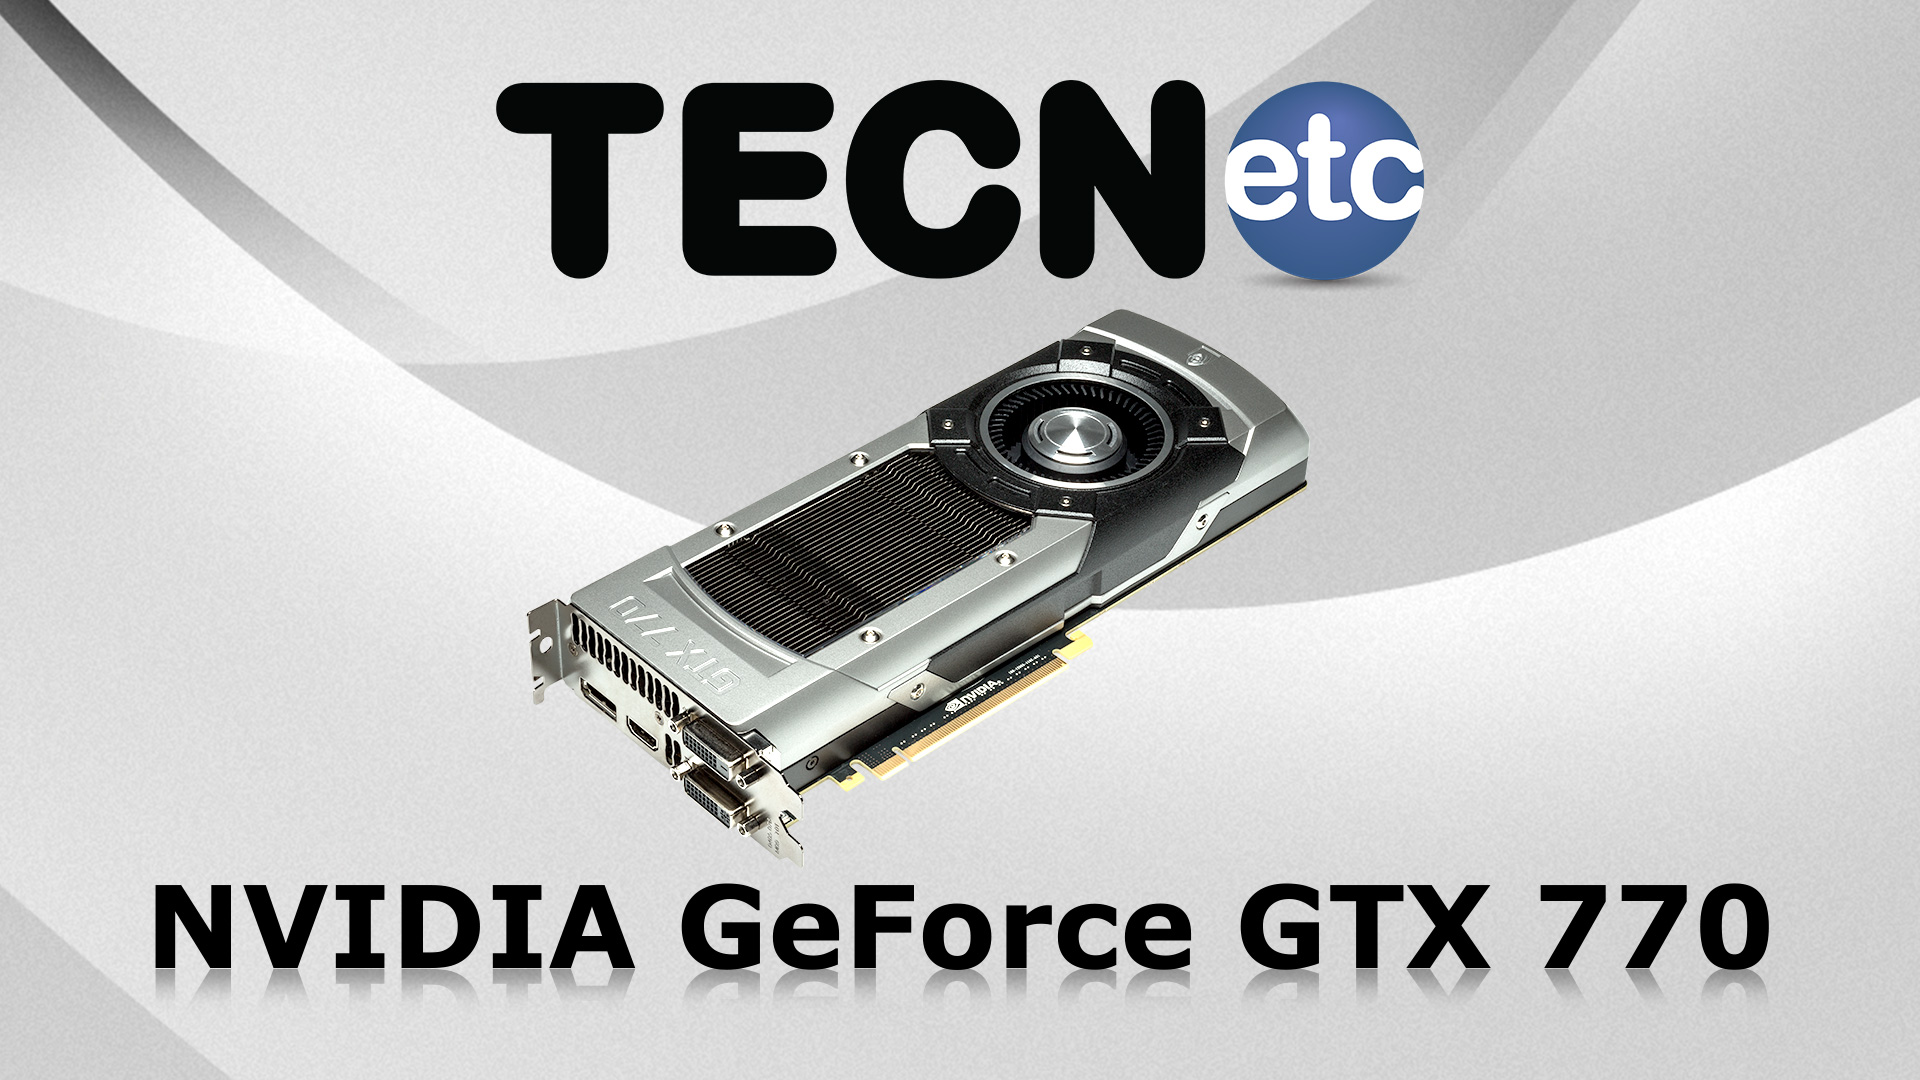 Nvidia GeForce GTX 770: Review